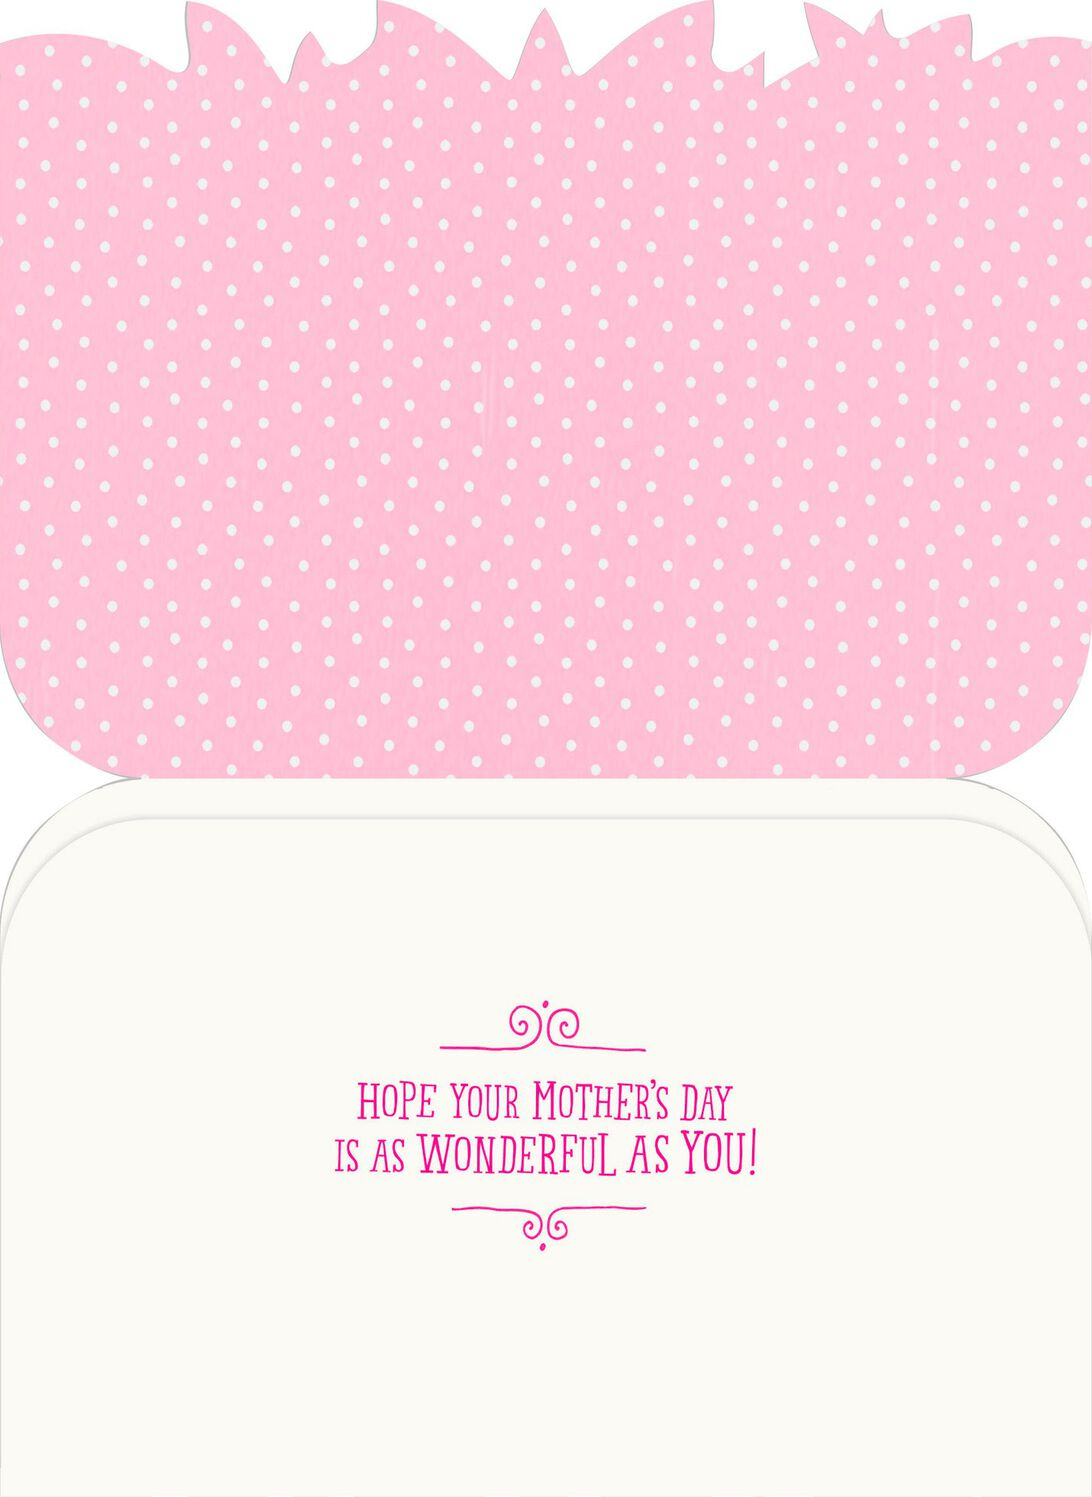 Wonderful mom mothers day song card greeting cards hallmark wonderful mom mothers day song card m4hsunfo